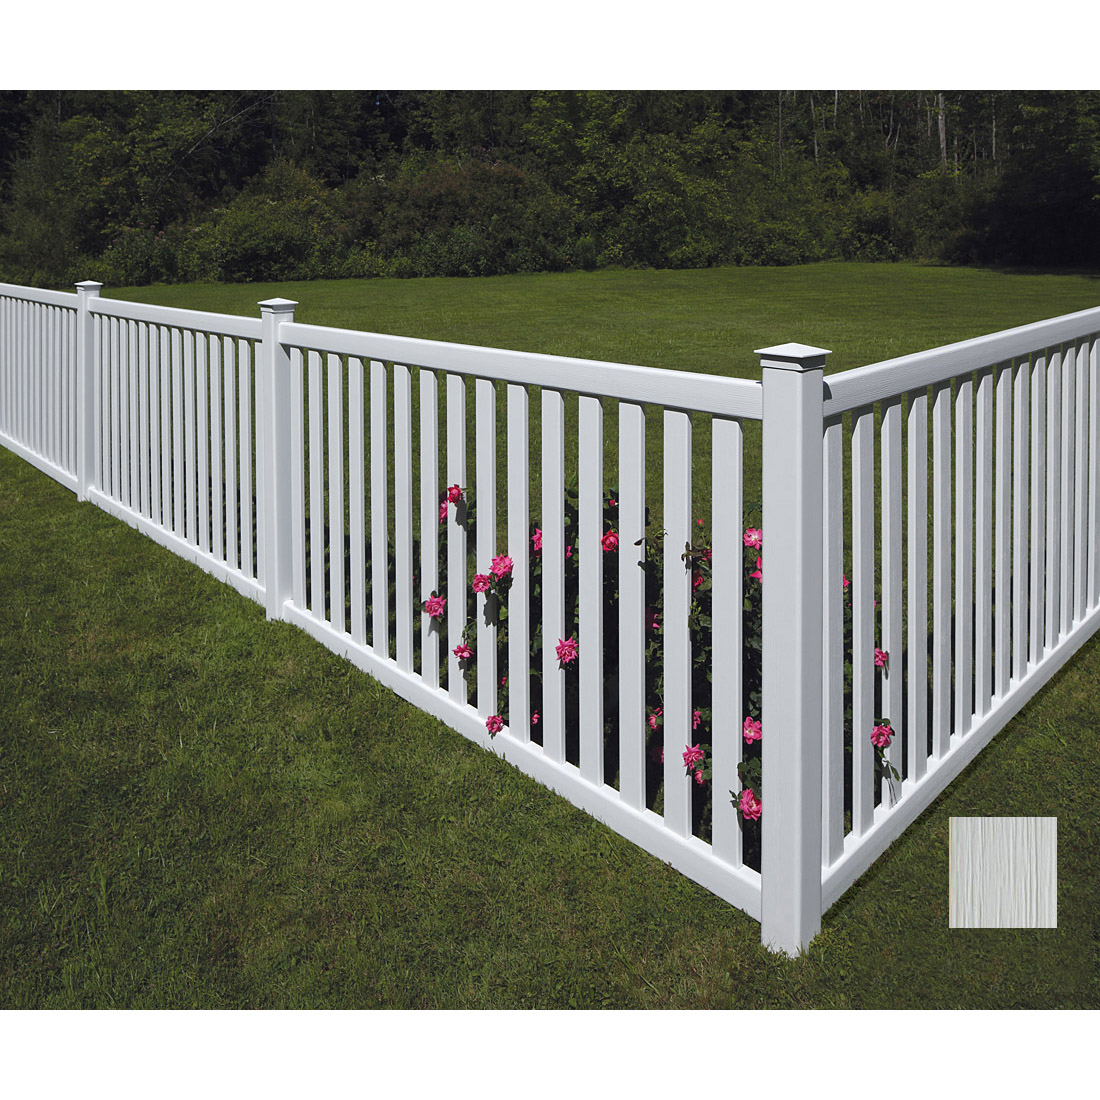 Baron Select Cedar Fence